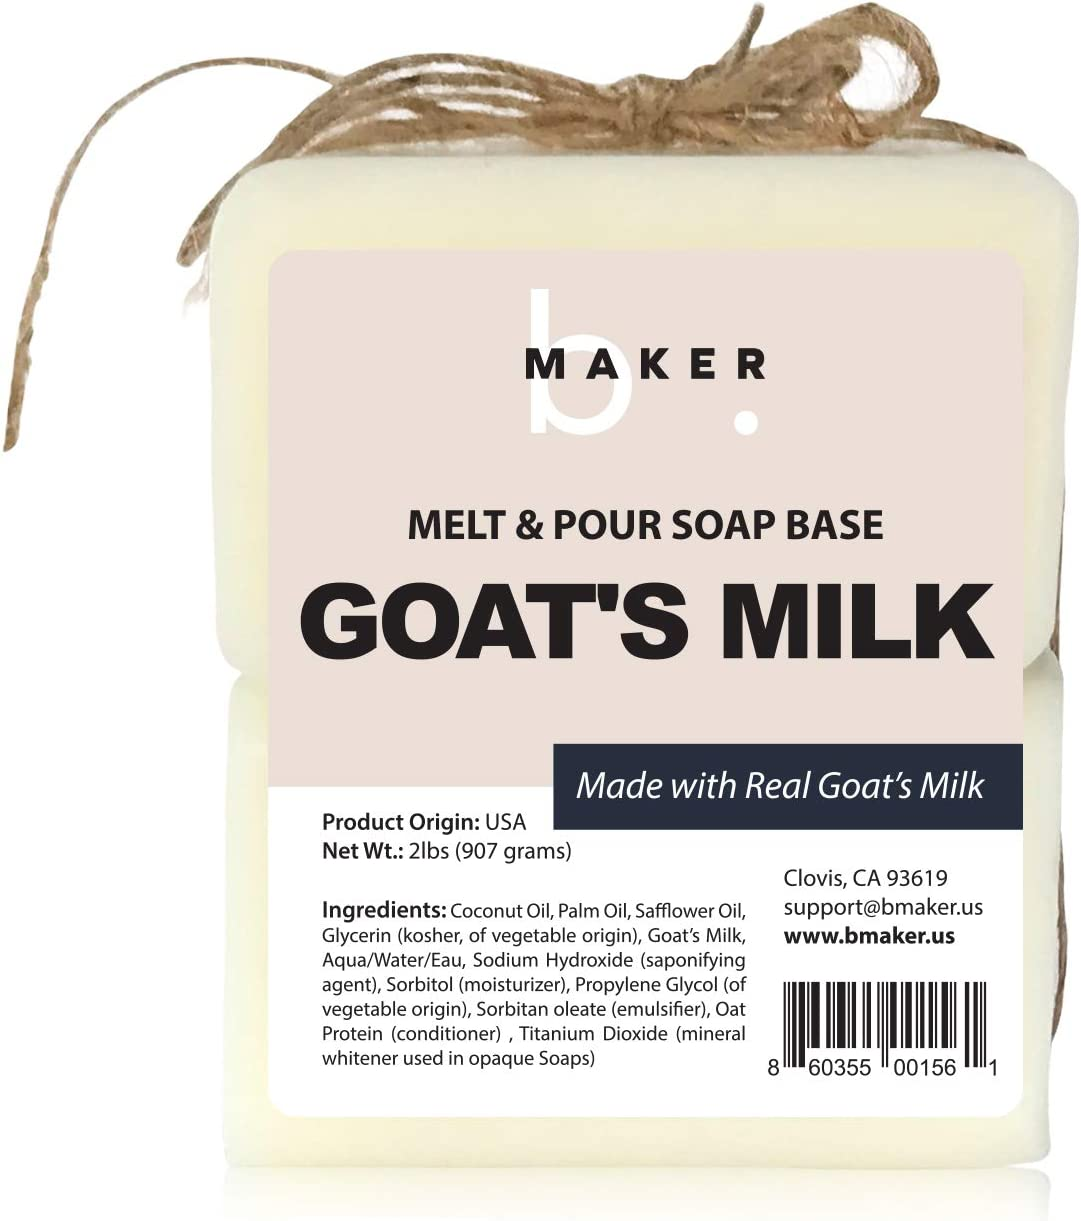 bMAKER All-Natural Goats Milk Melt and Pour Soap Base (2lb Blocks) - Moisturizing and Nourishing M&P Base Soap Making Supplies - Suitable for Sensitive or Dry Skin: Arts, Crafts & Sewing